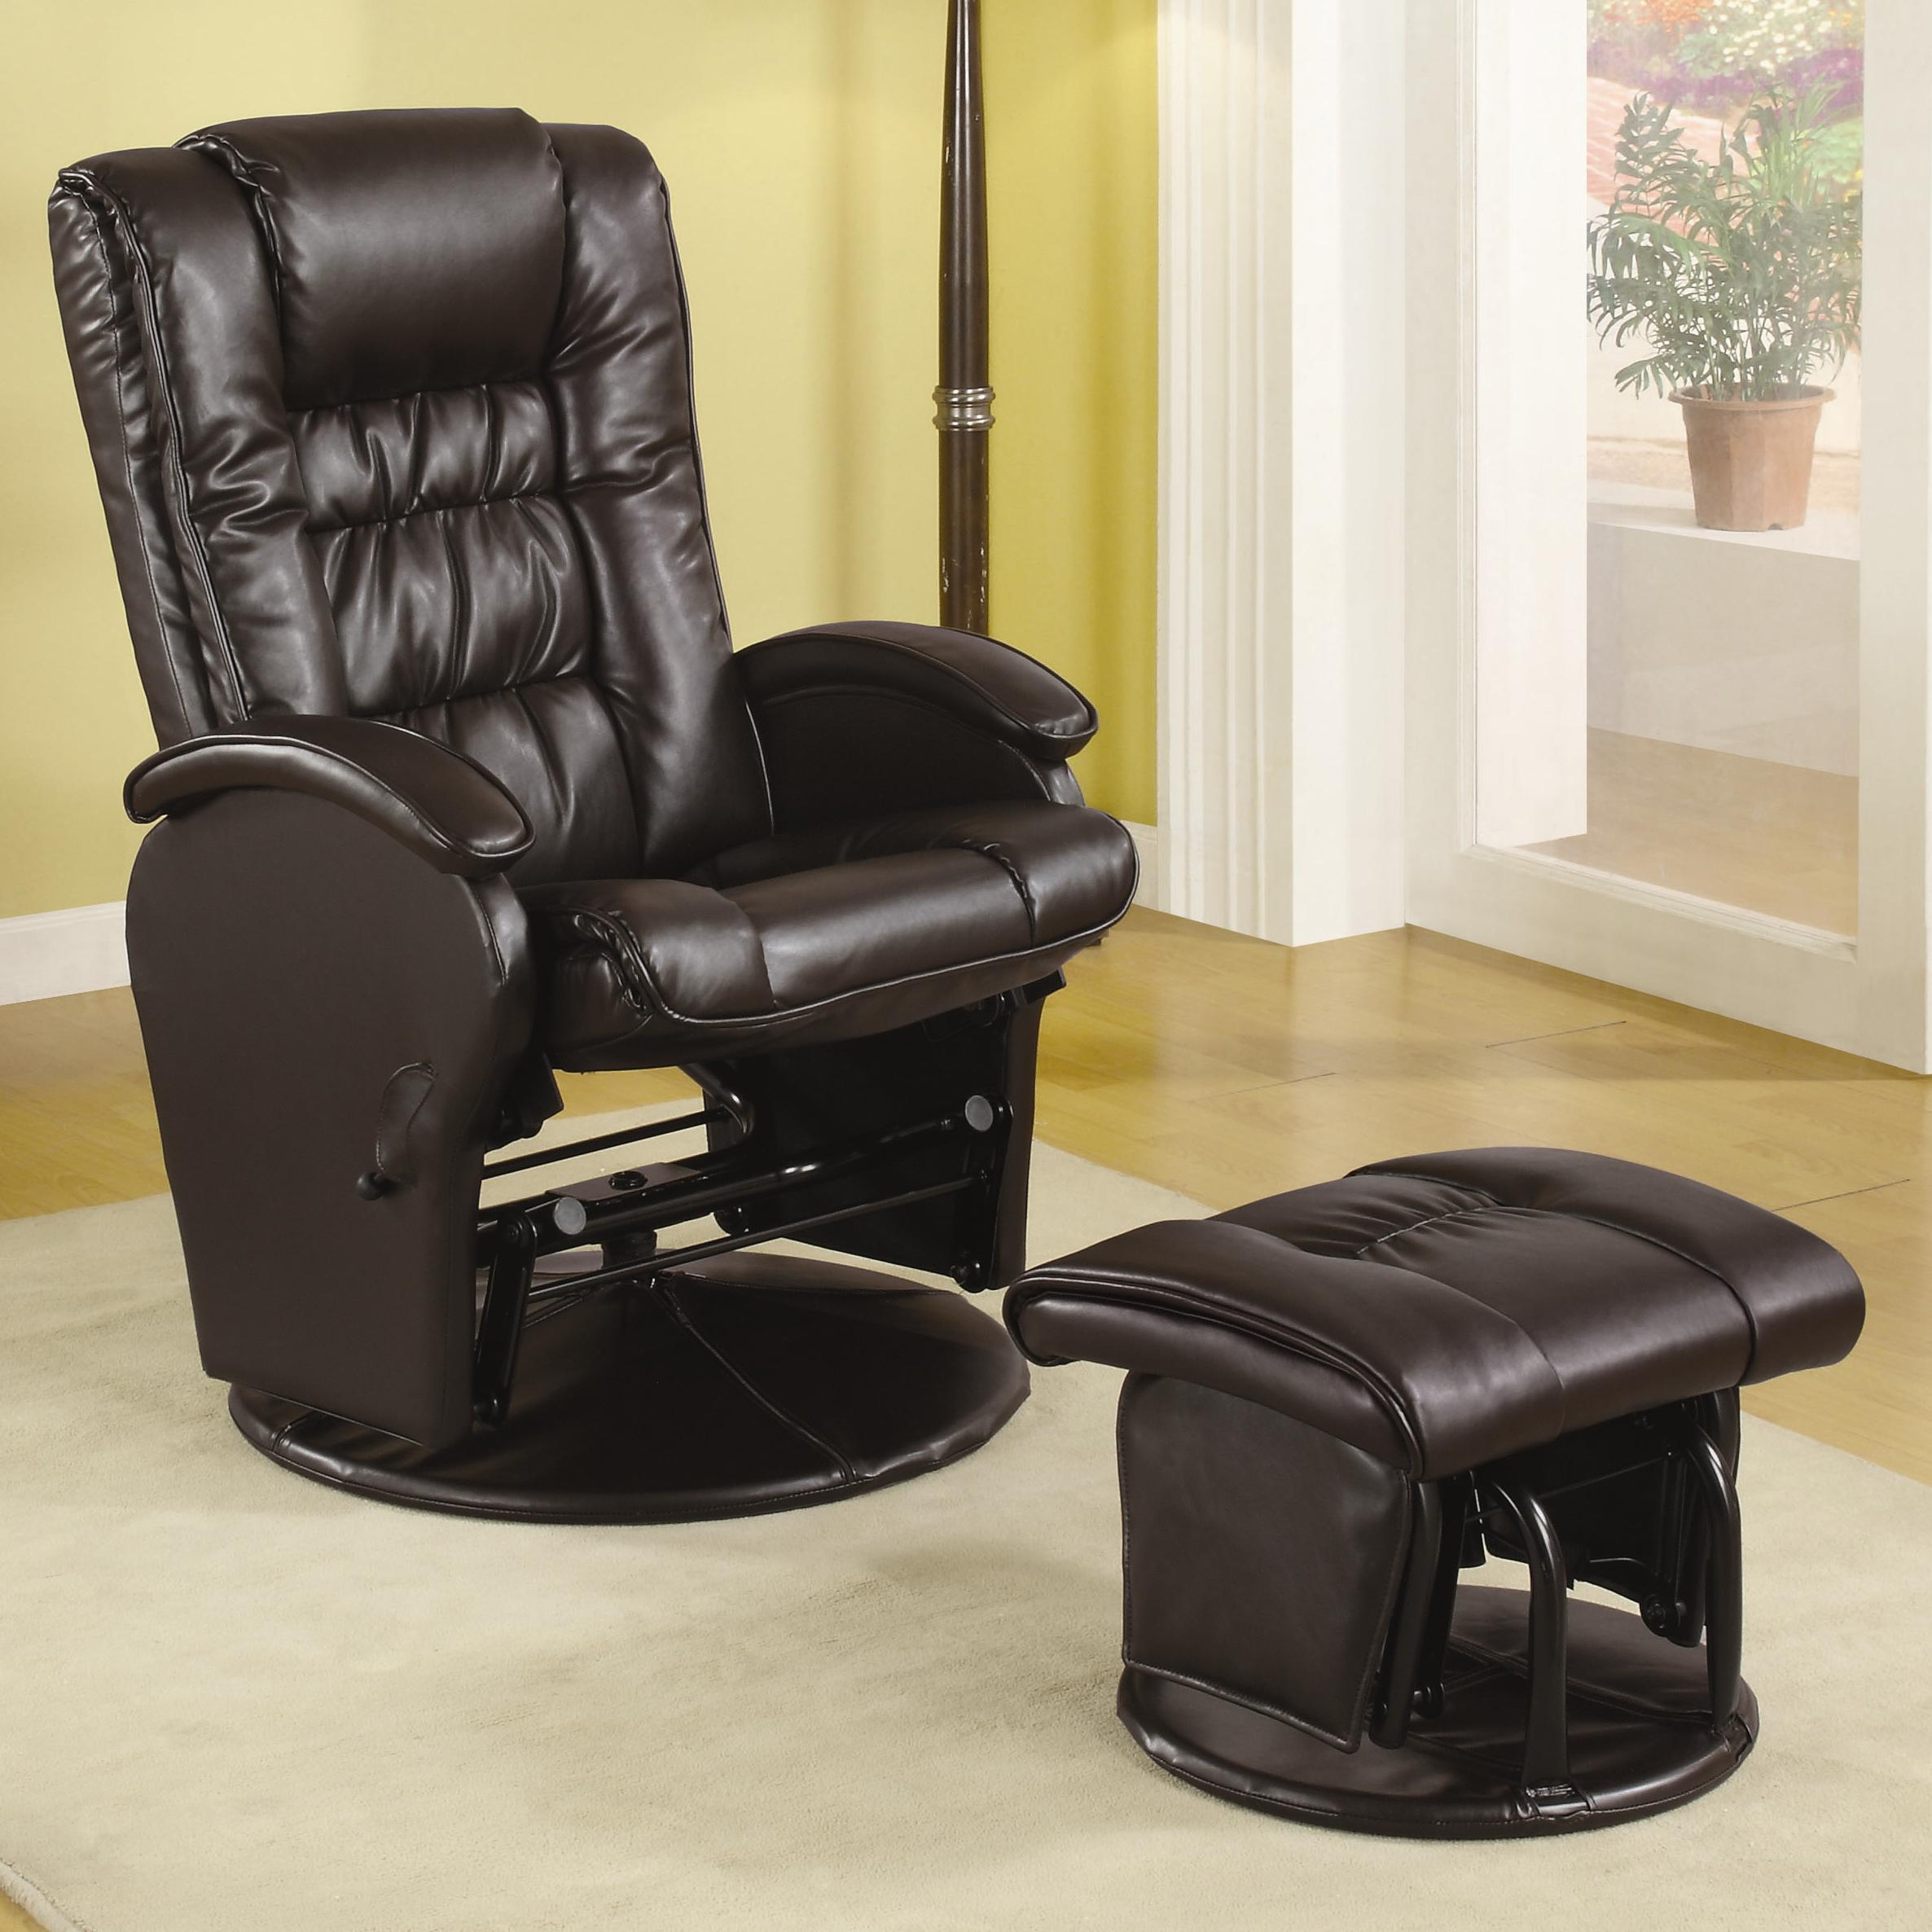 Coaster Recliners with Ottomans Glider Recliner with Ottoman - Item Number: 600164